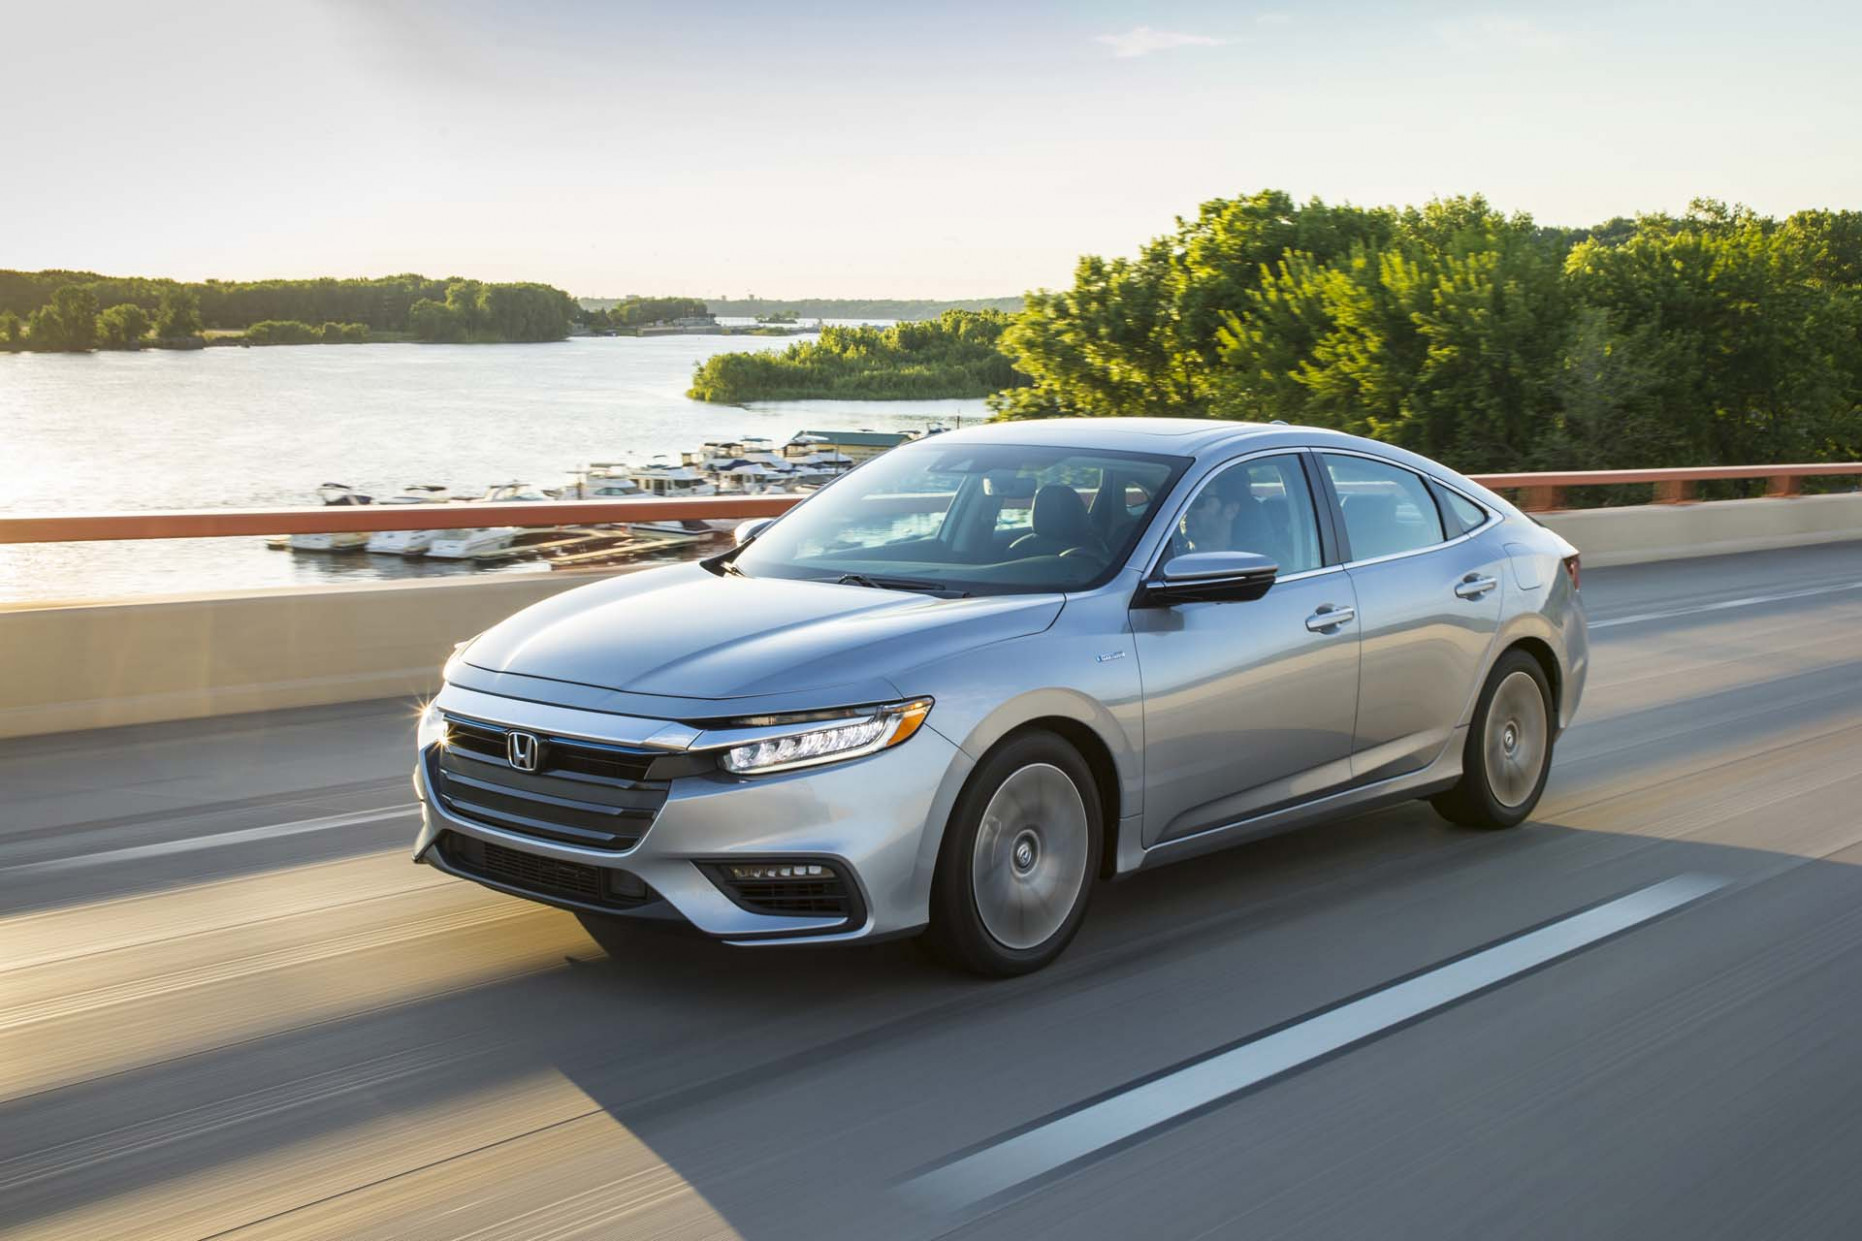 7 Honda Insight Review, Ratings, Specs, Prices, and Photos ...